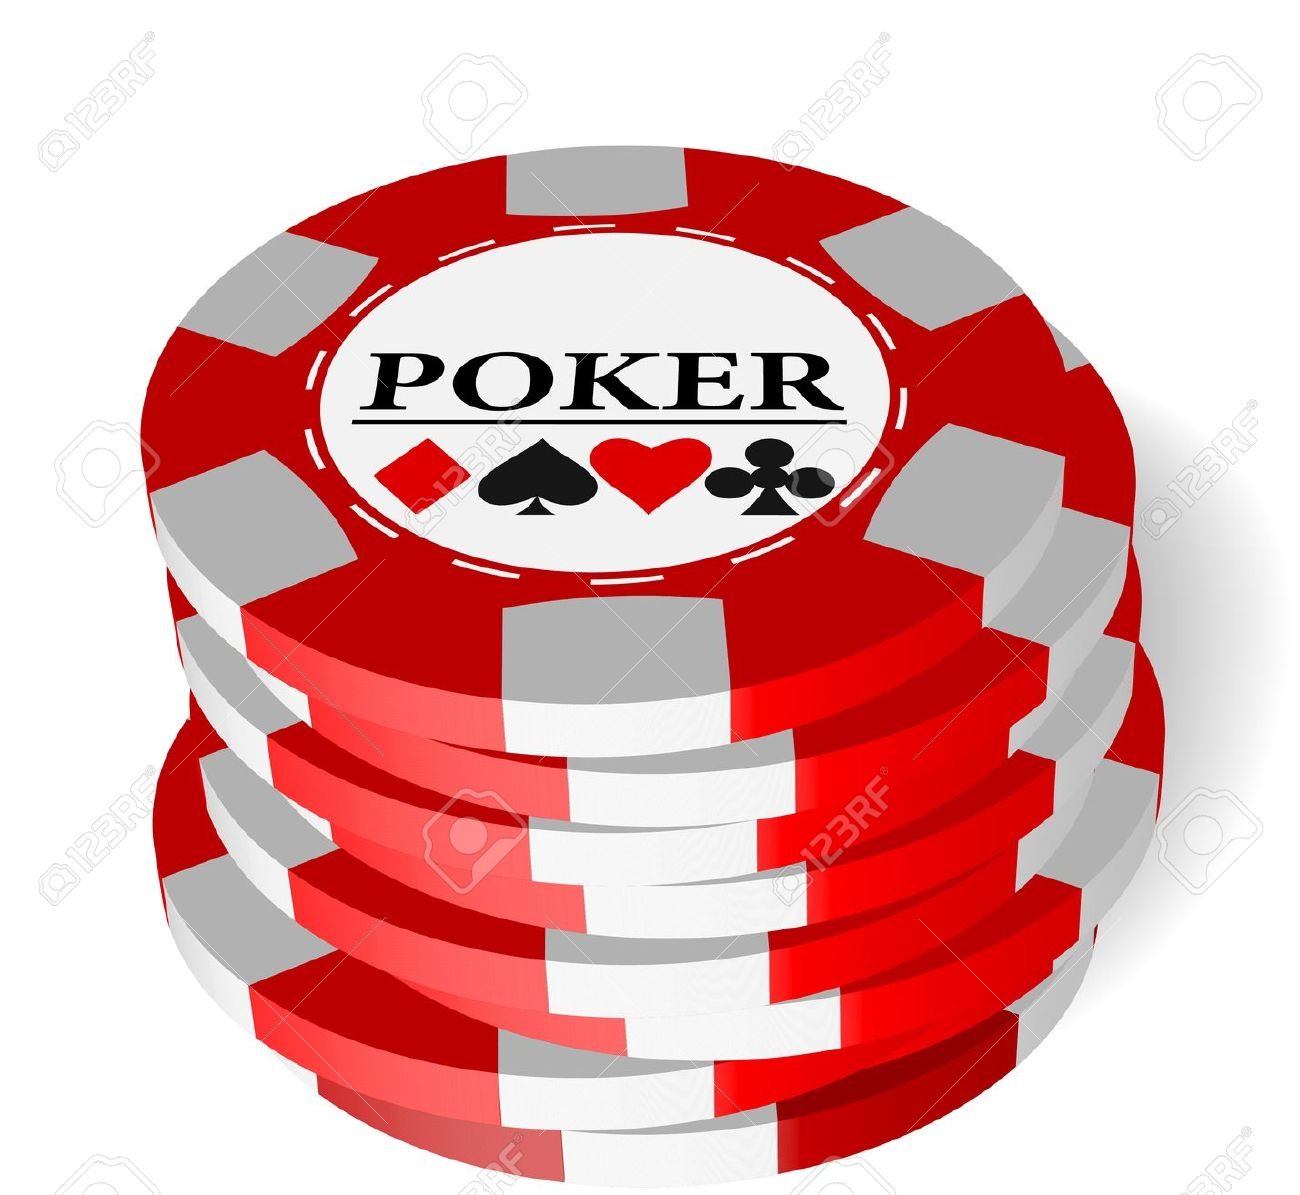 Poker Chips Clipart Free.